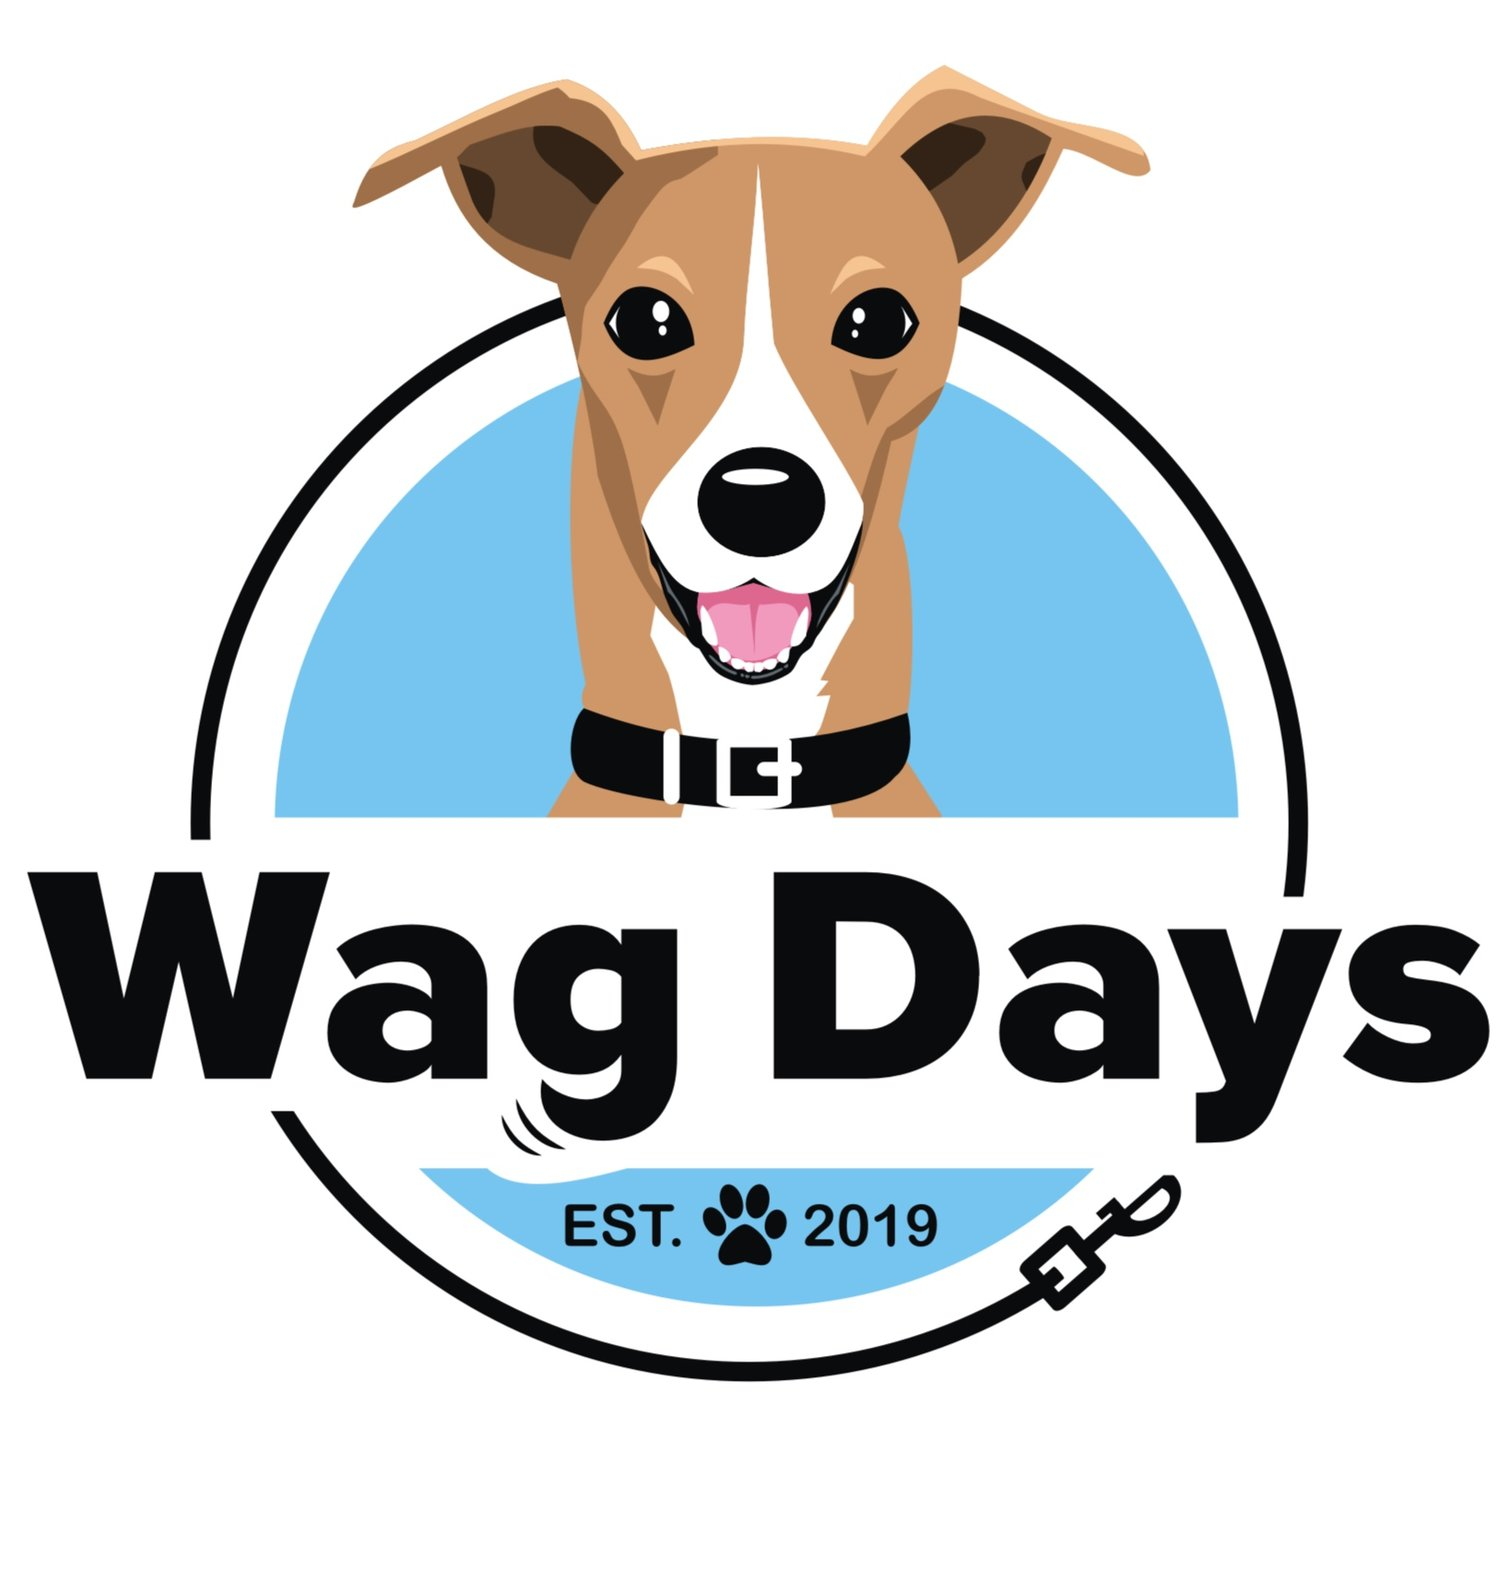 Wag Days LLC